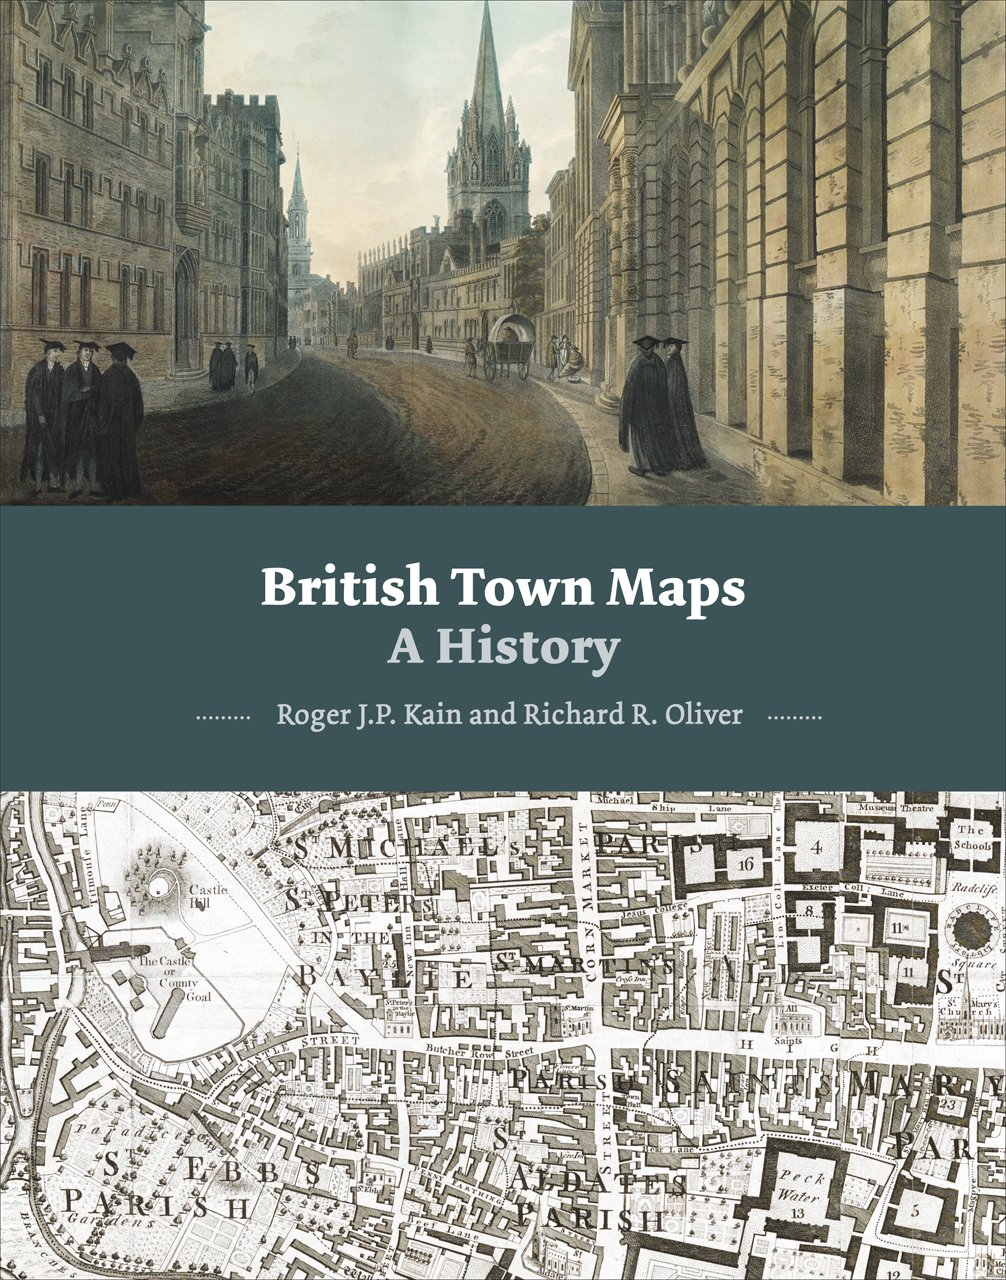 Catalogue Of British Town Maps - Brits label us map 2015